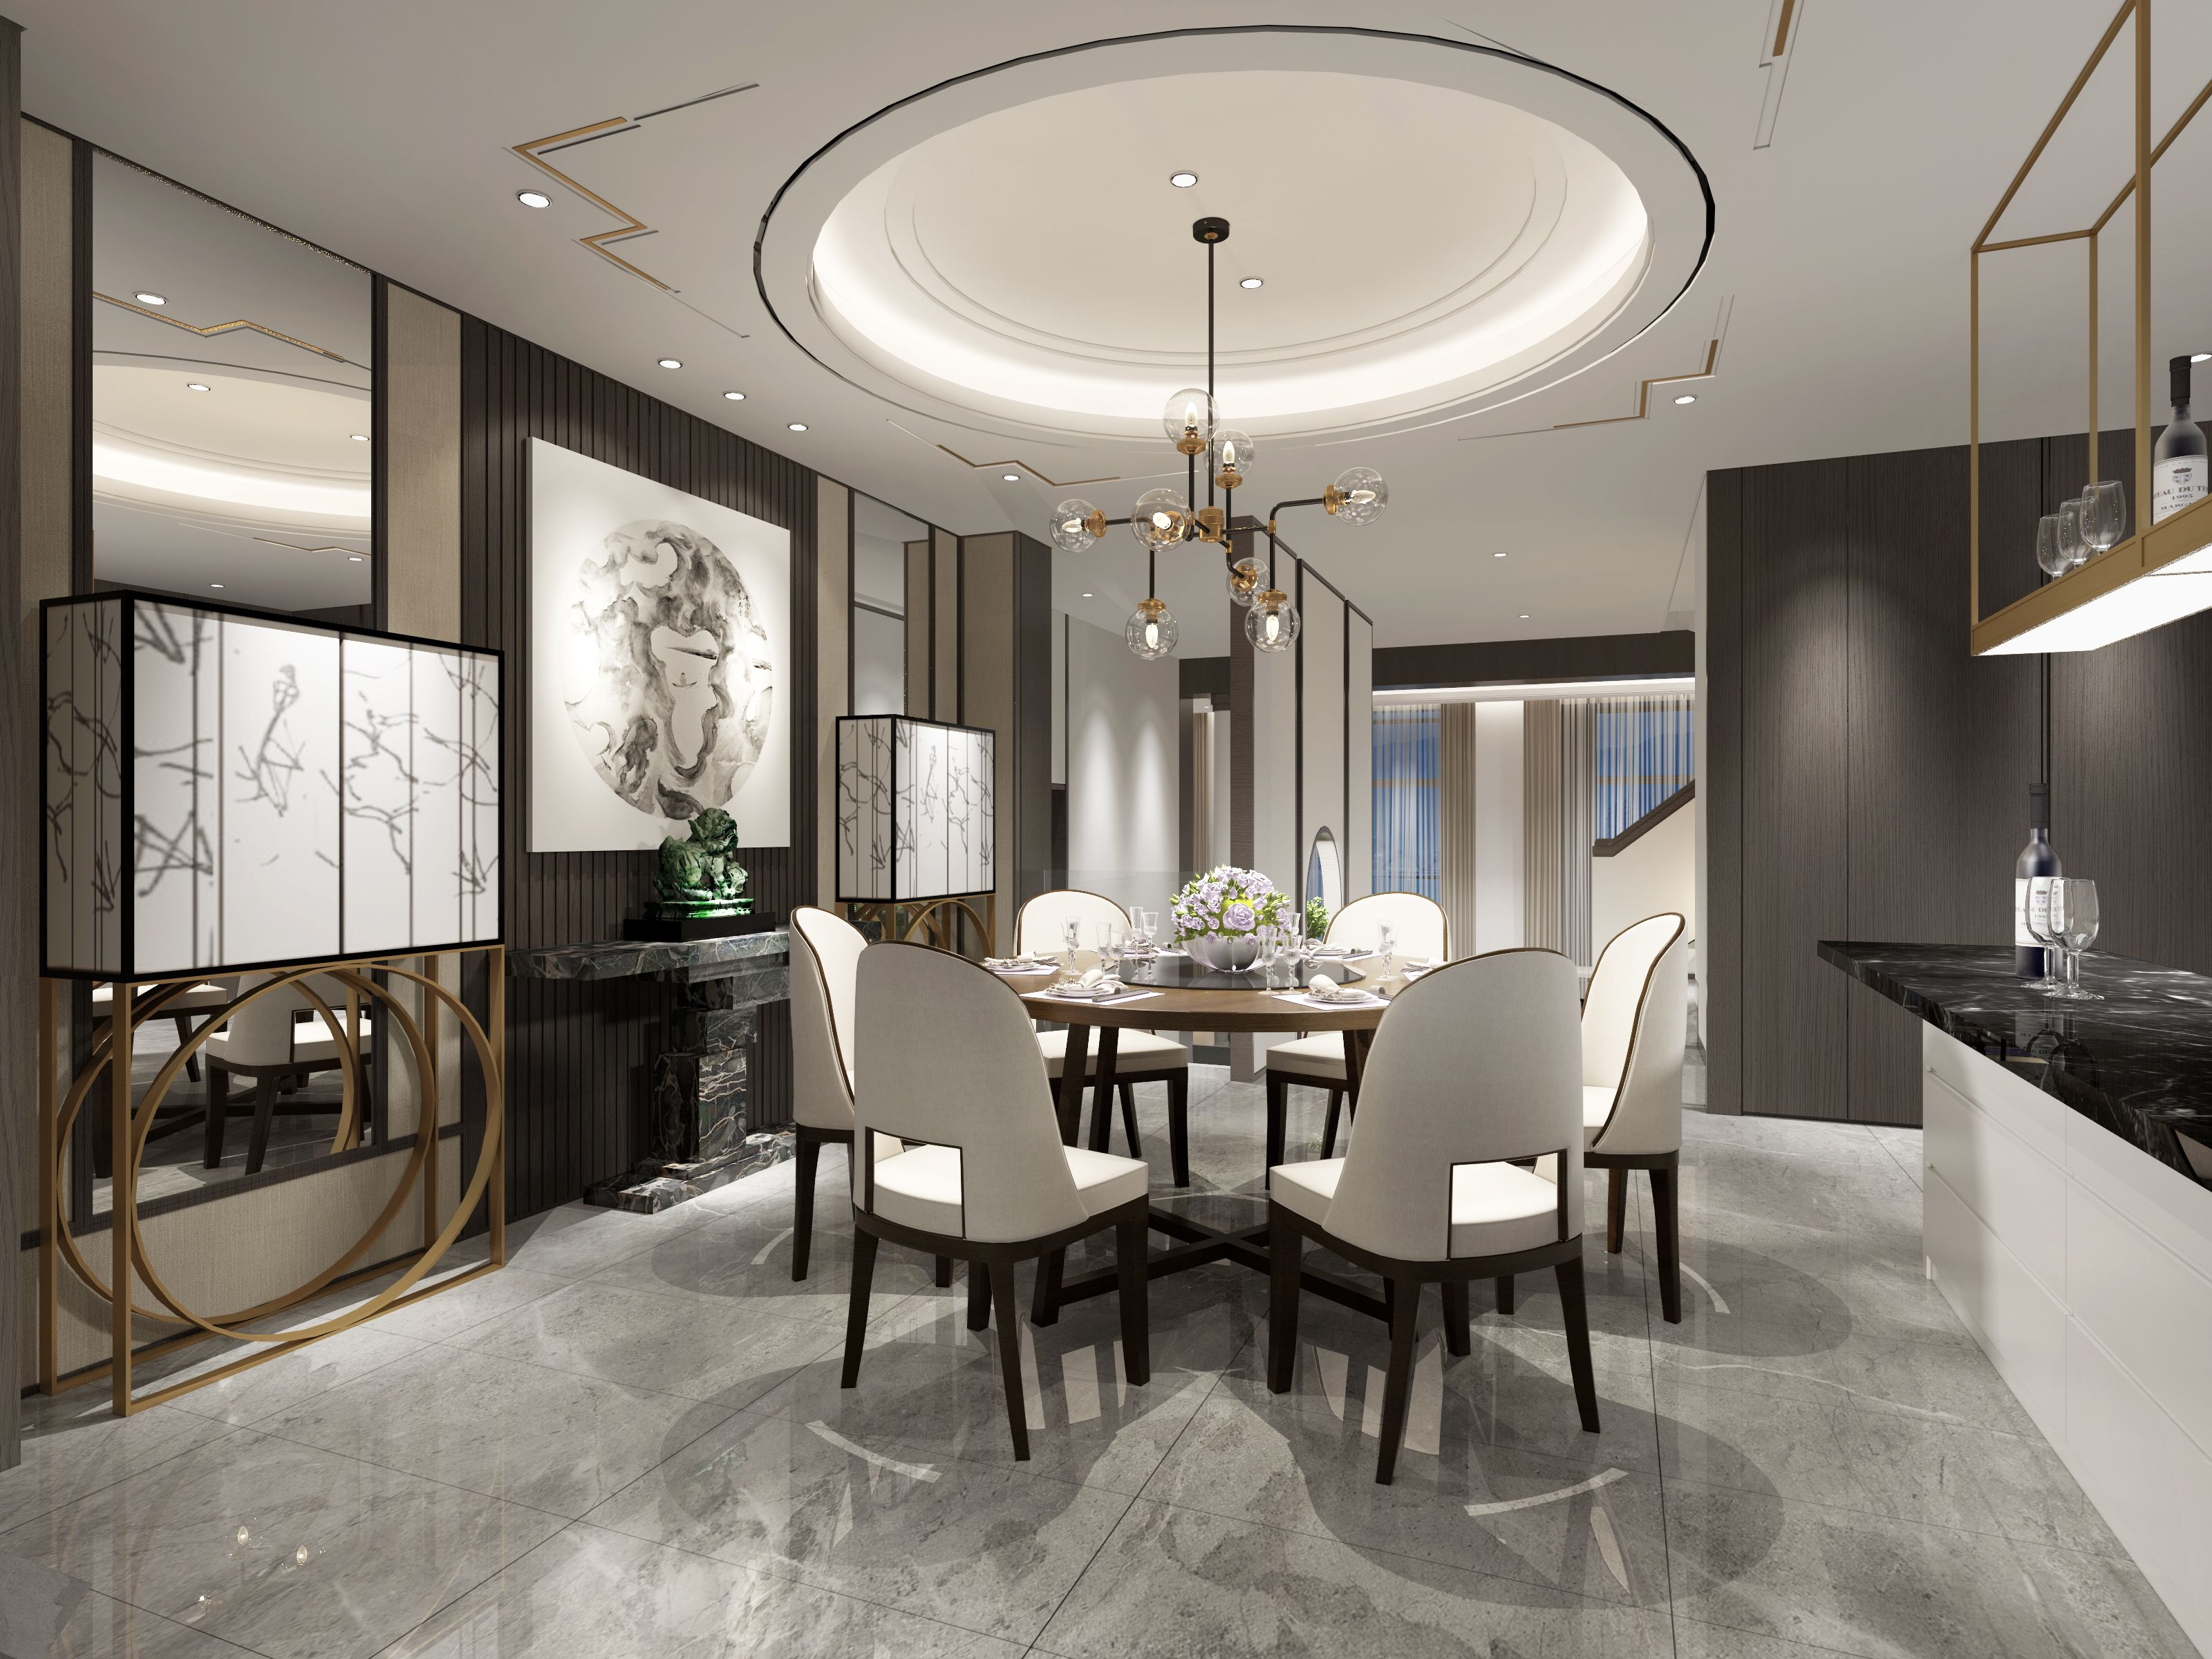 Pin By Suyili On Suyili Design Luxury Dining Room Beautiful Dining Rooms Residential Interior